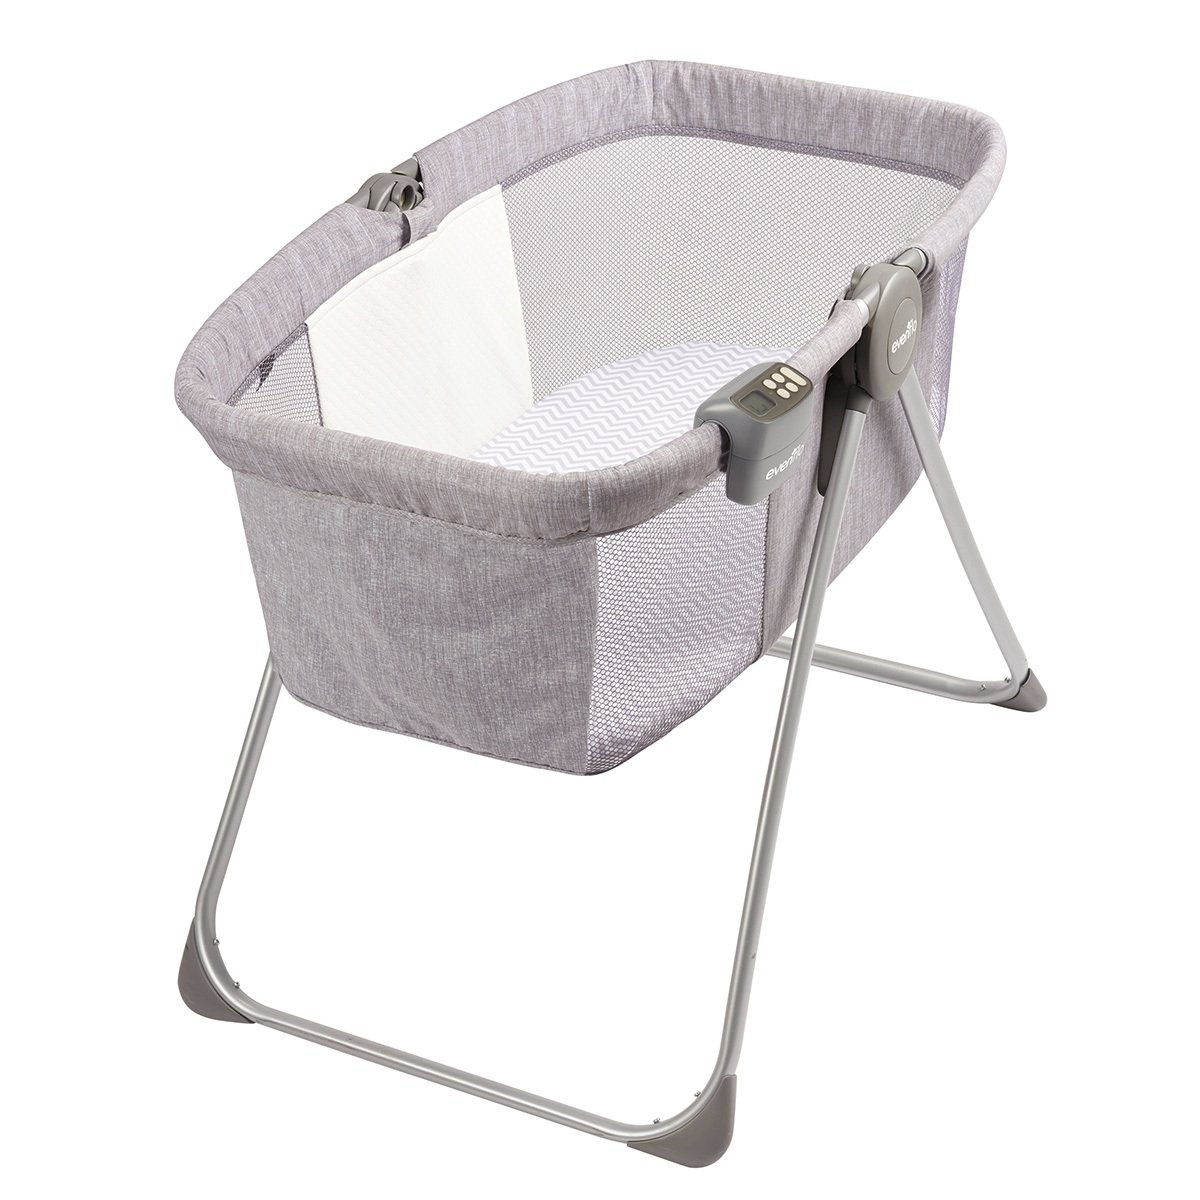 Evenflo Loft Portable Bassinet, Grey Melange by Evenflo